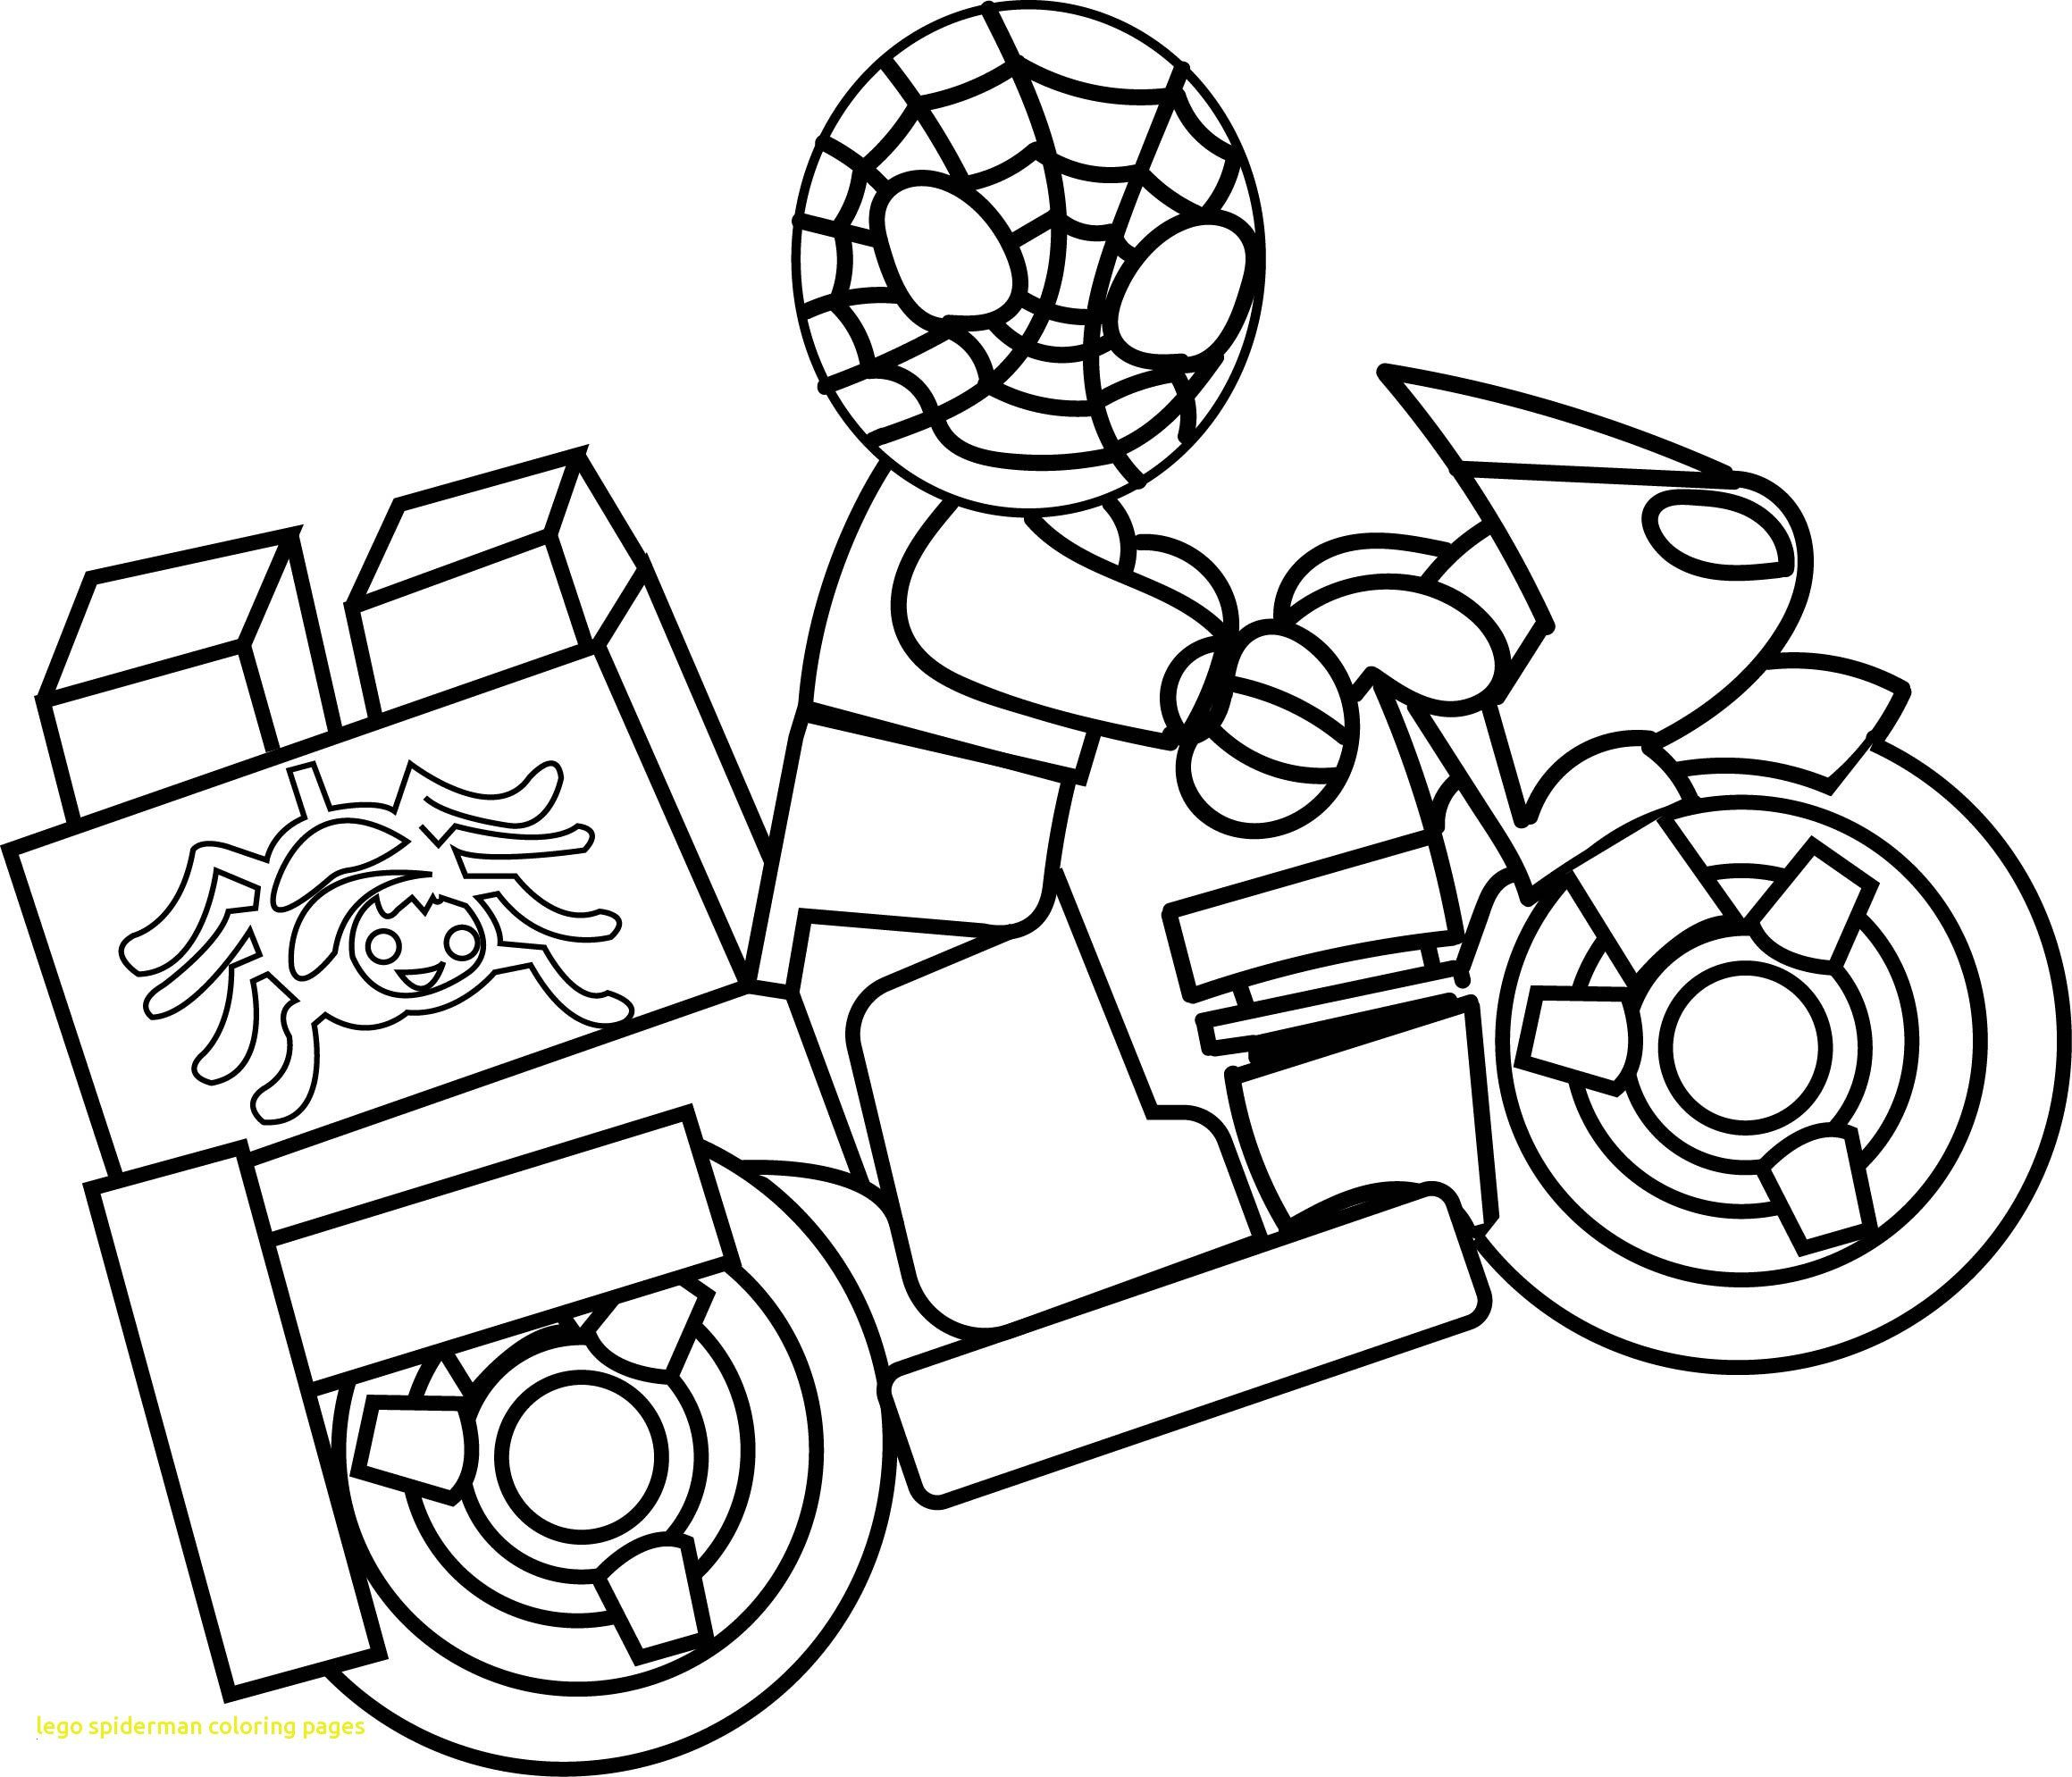 Printable Spiderman Coloring Pages Easy And Fun In 2020 Lego